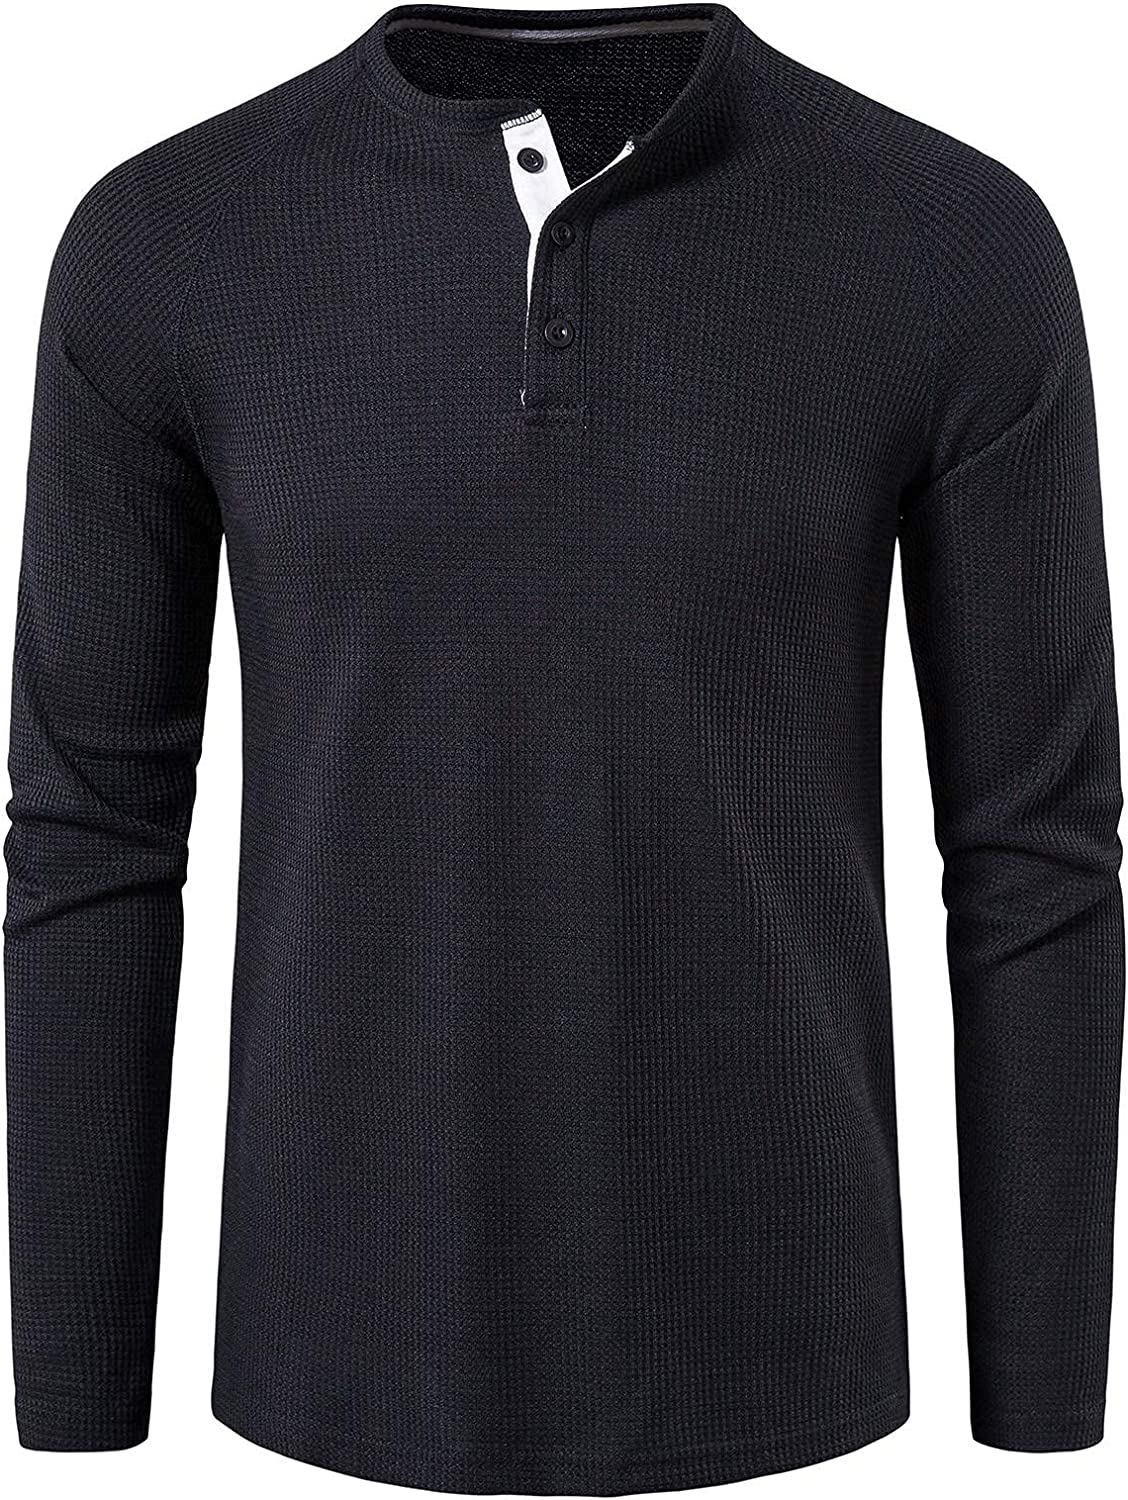 Casual Long Sleeve Shirts for Men Round Neck Solid Button Down Tops Breathable Cotton Shirts for Spring Autumn